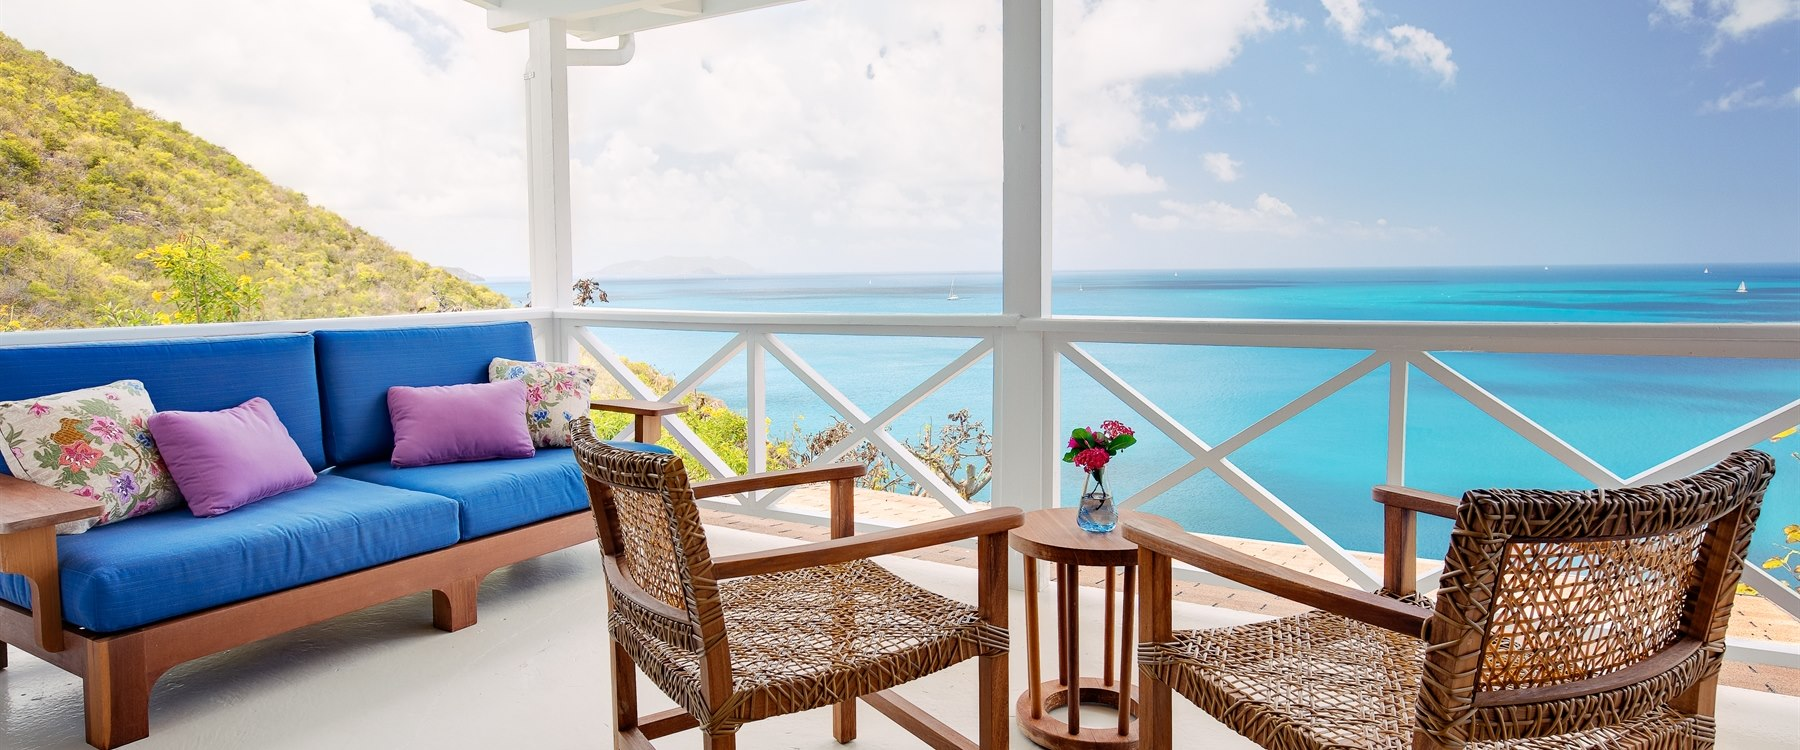 Terrace overlooking the ocean at Guana Island, British Virgin Islands